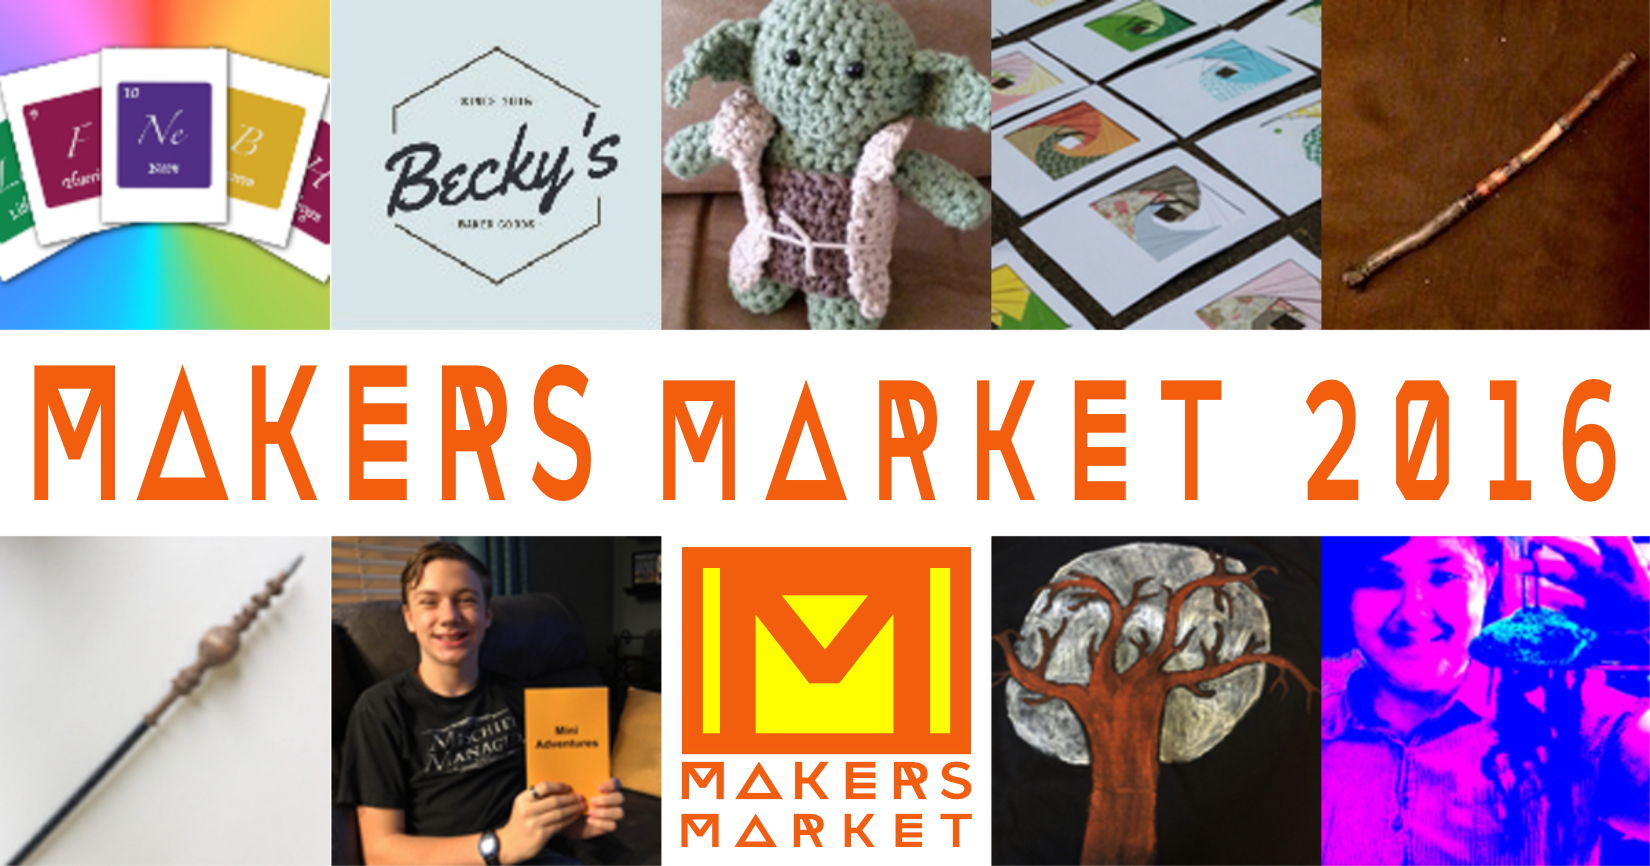 Makers Market 2016 booths